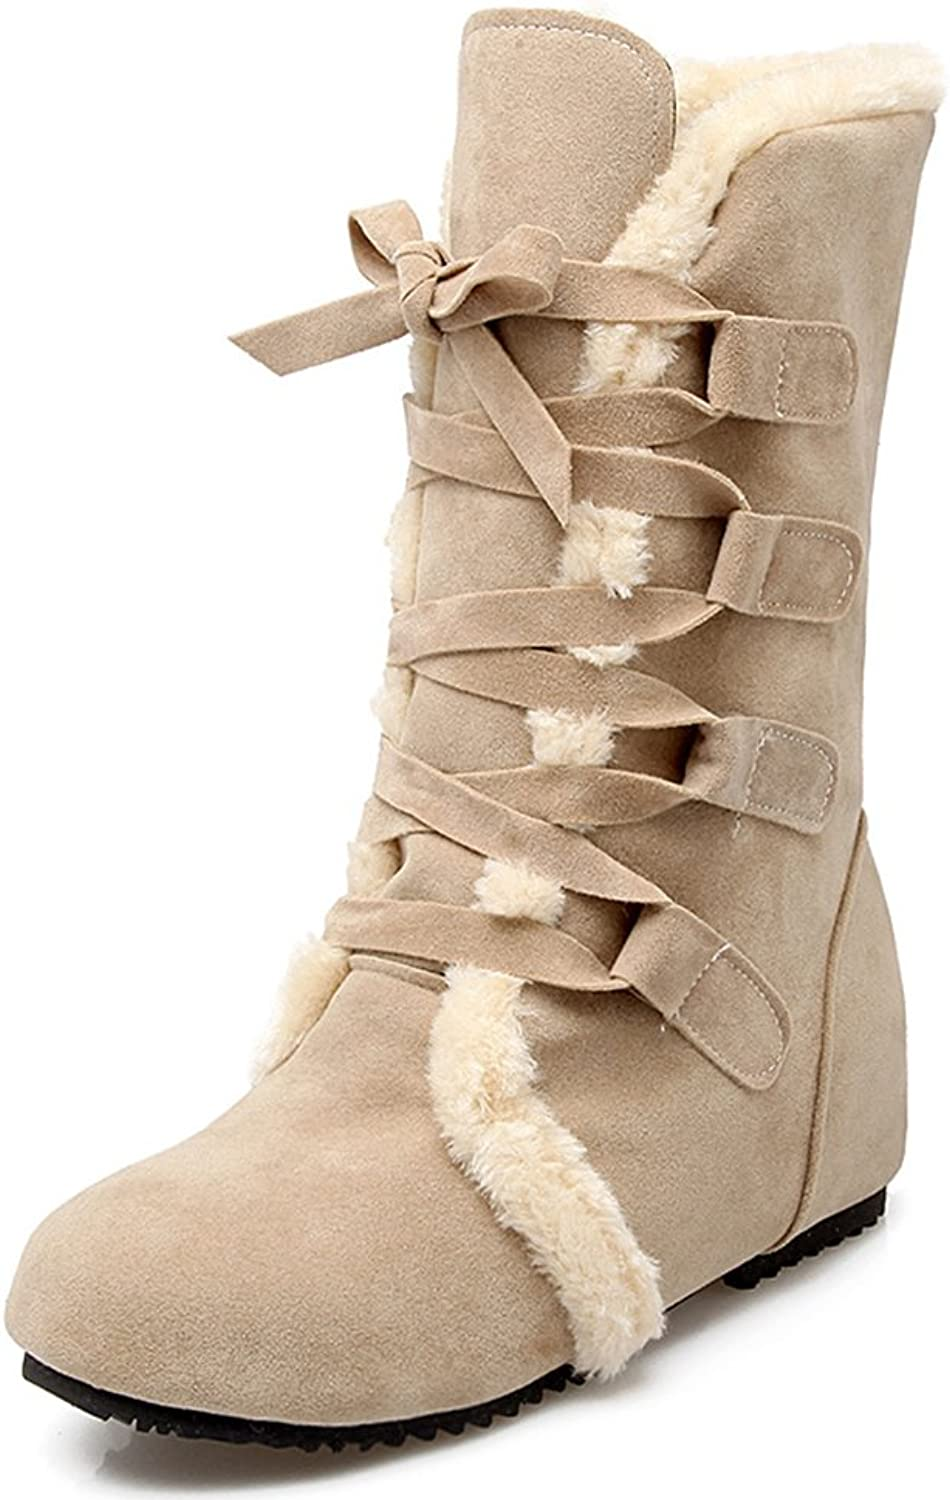 IDIFU Women's Warm Faux Fur Lined Heighten Heels Lace Up Boots Ankle Snow Booties